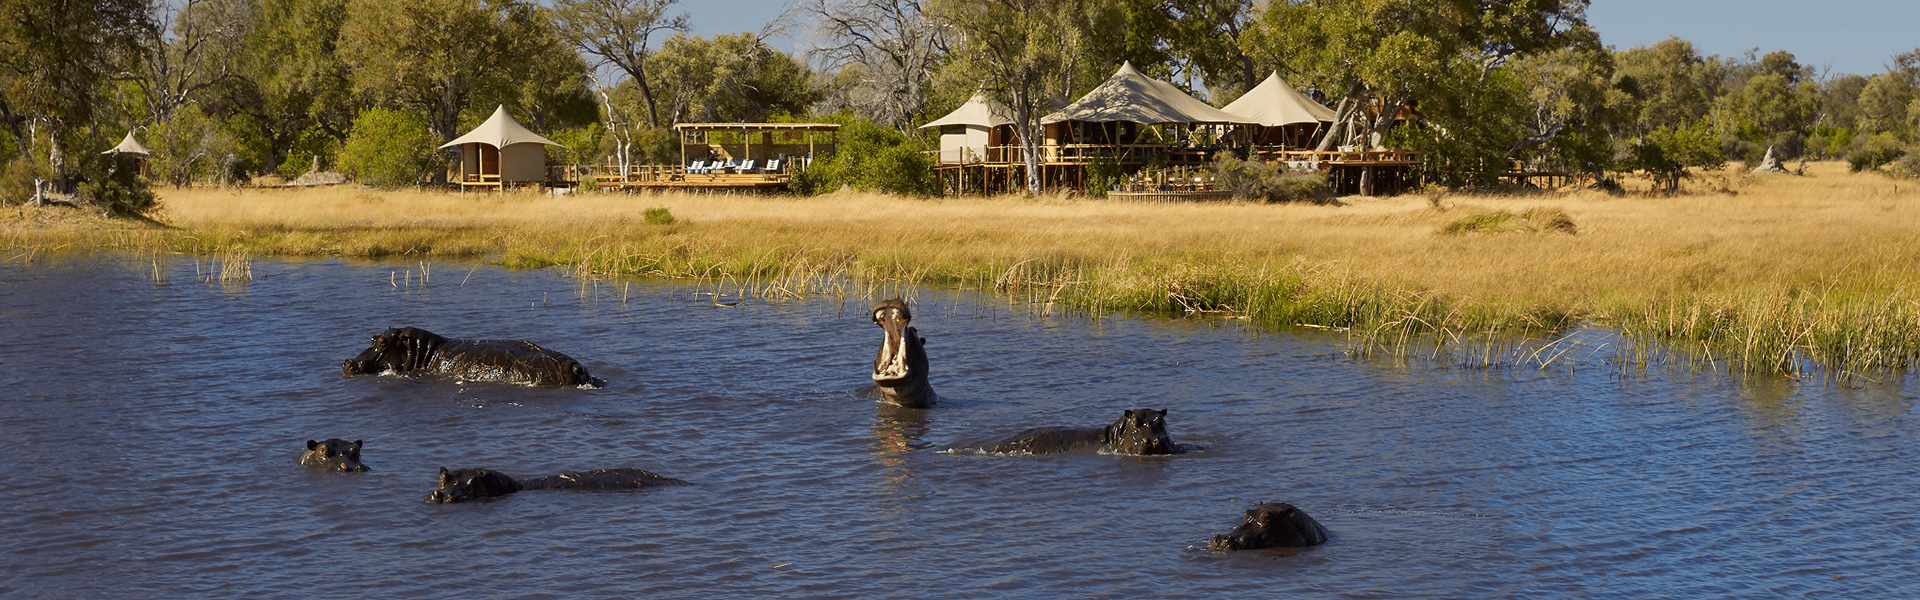 Tuludi's tree-house styled tents with resident hippo pod in the lagoon